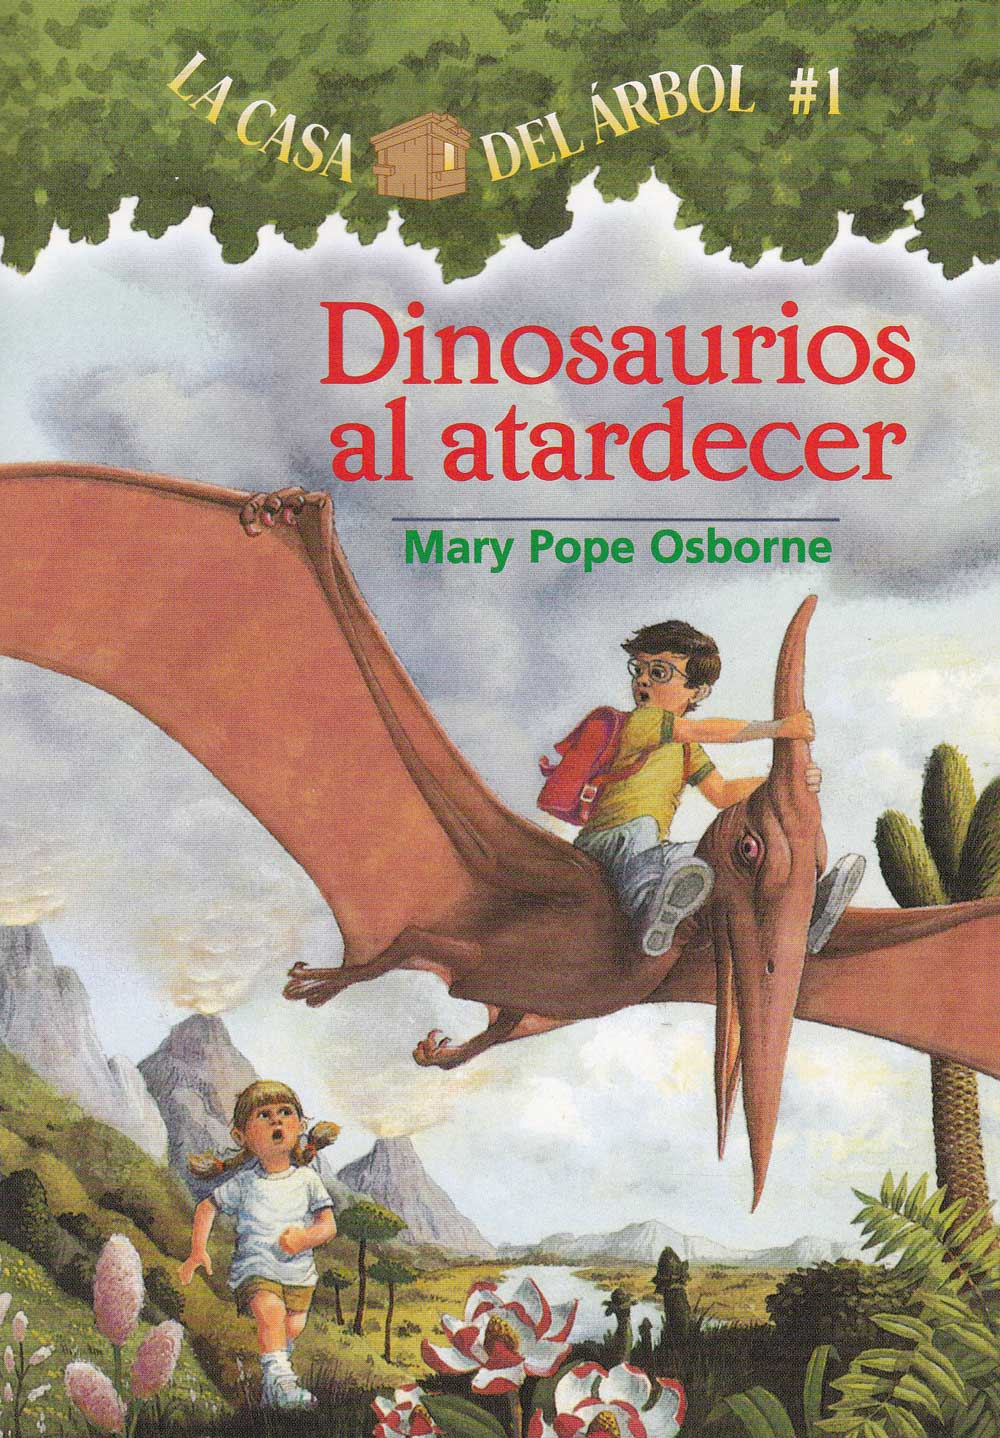 Casa del arbol Collection, Magic Treehouse Collection, Rey Del Sol, Del Sol Books, Del Sol University